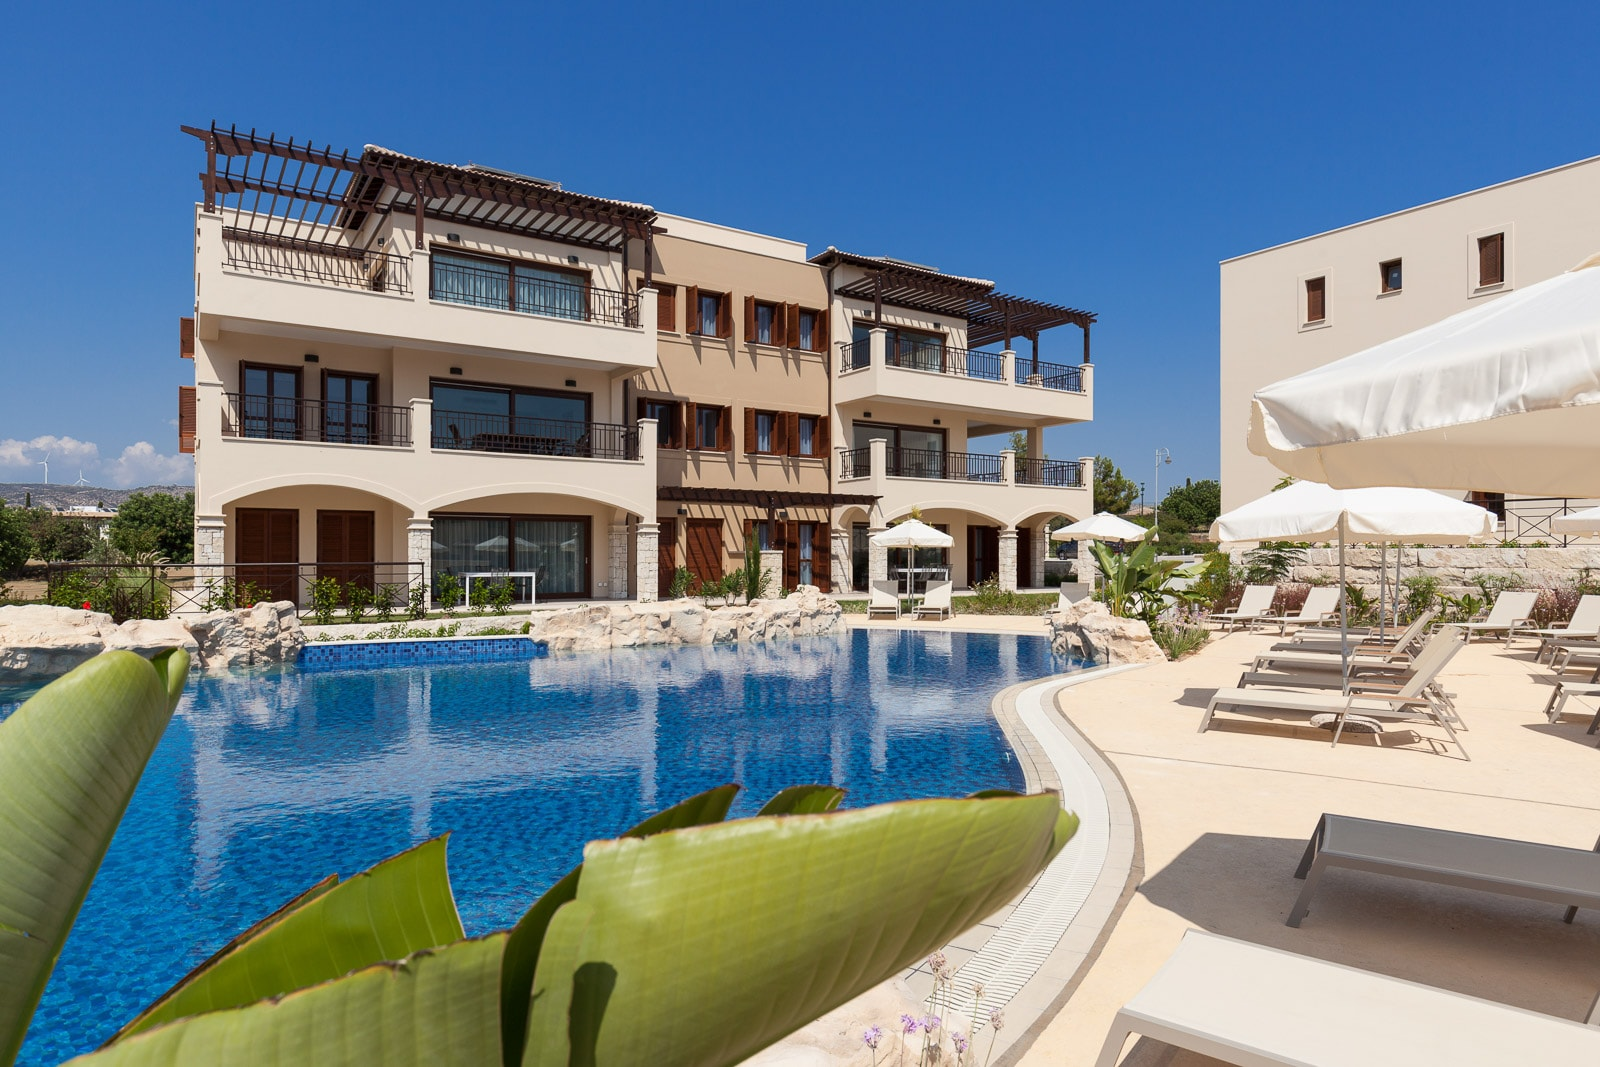 Property Image 2 - Modern 3 Bedroom Ground Floor Premium Apartment with shared Pool